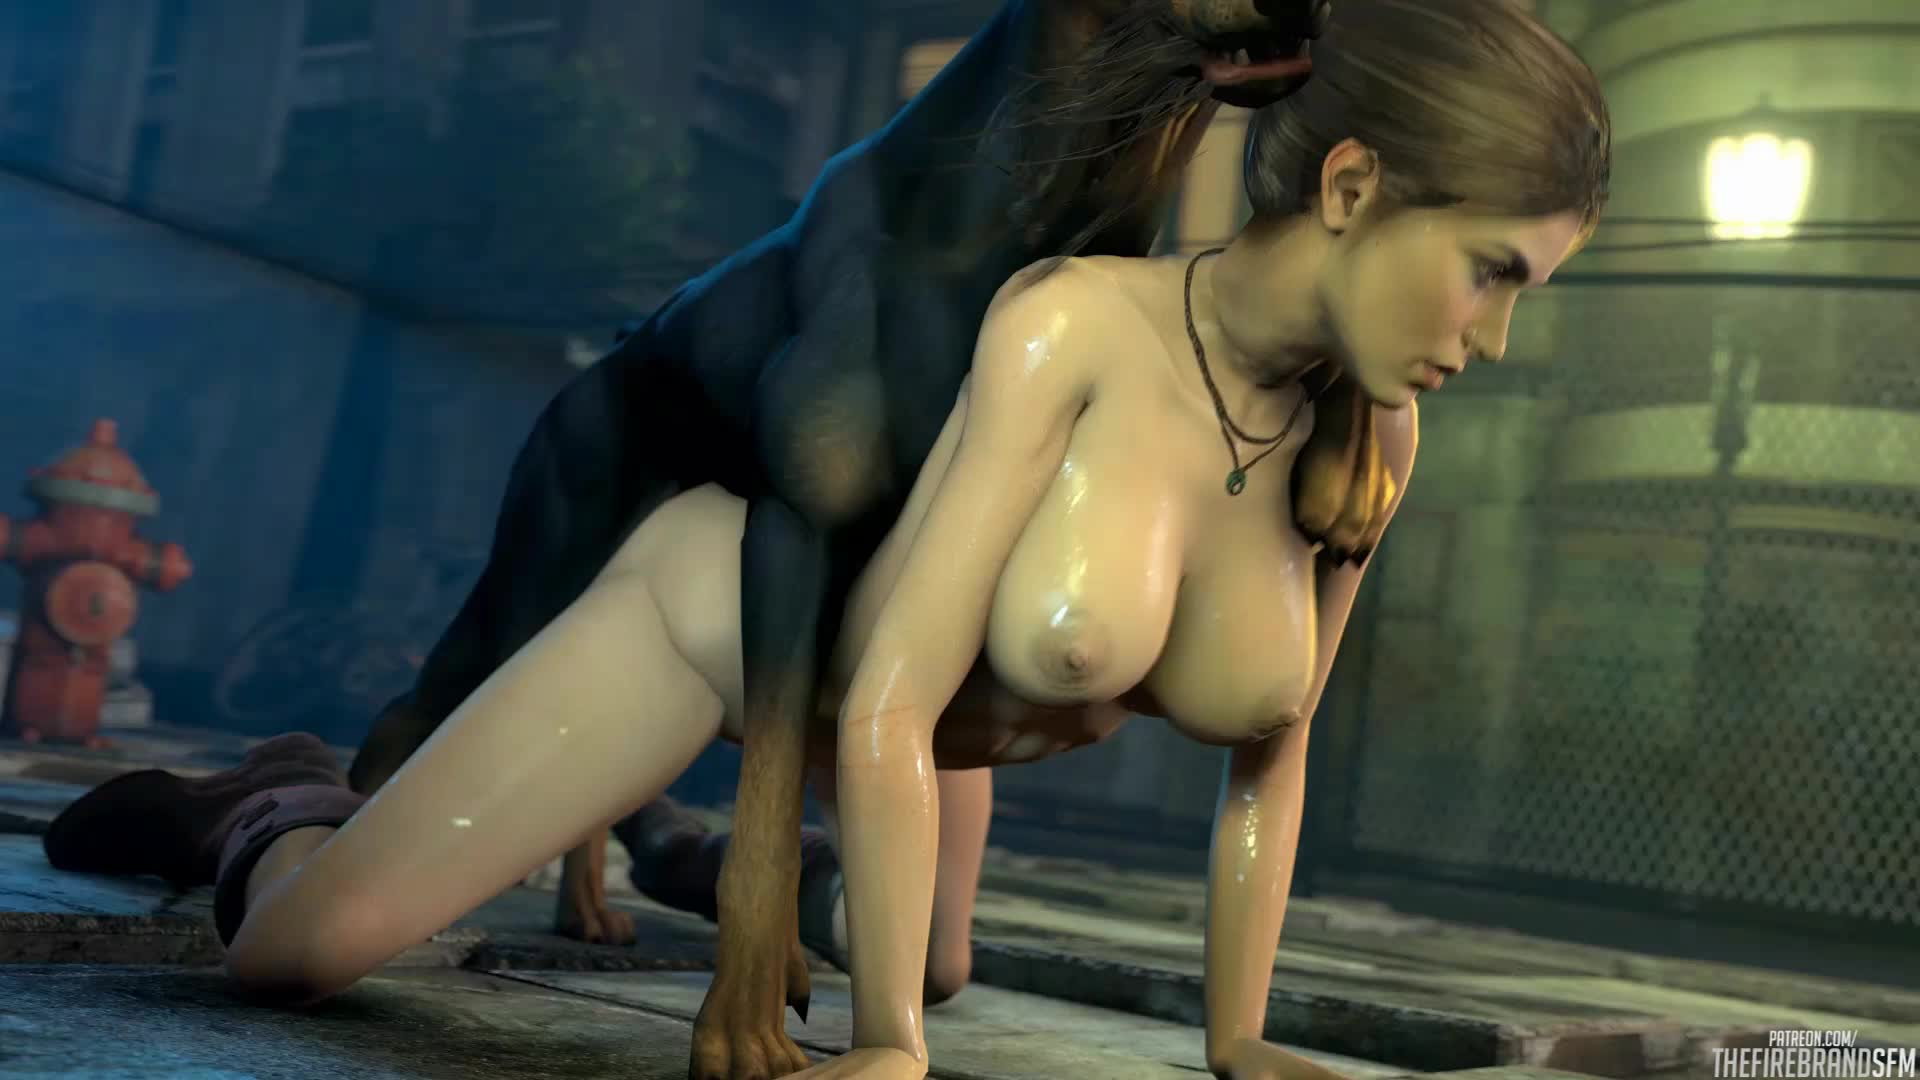 Tomb raider 3d boobs images pron scene